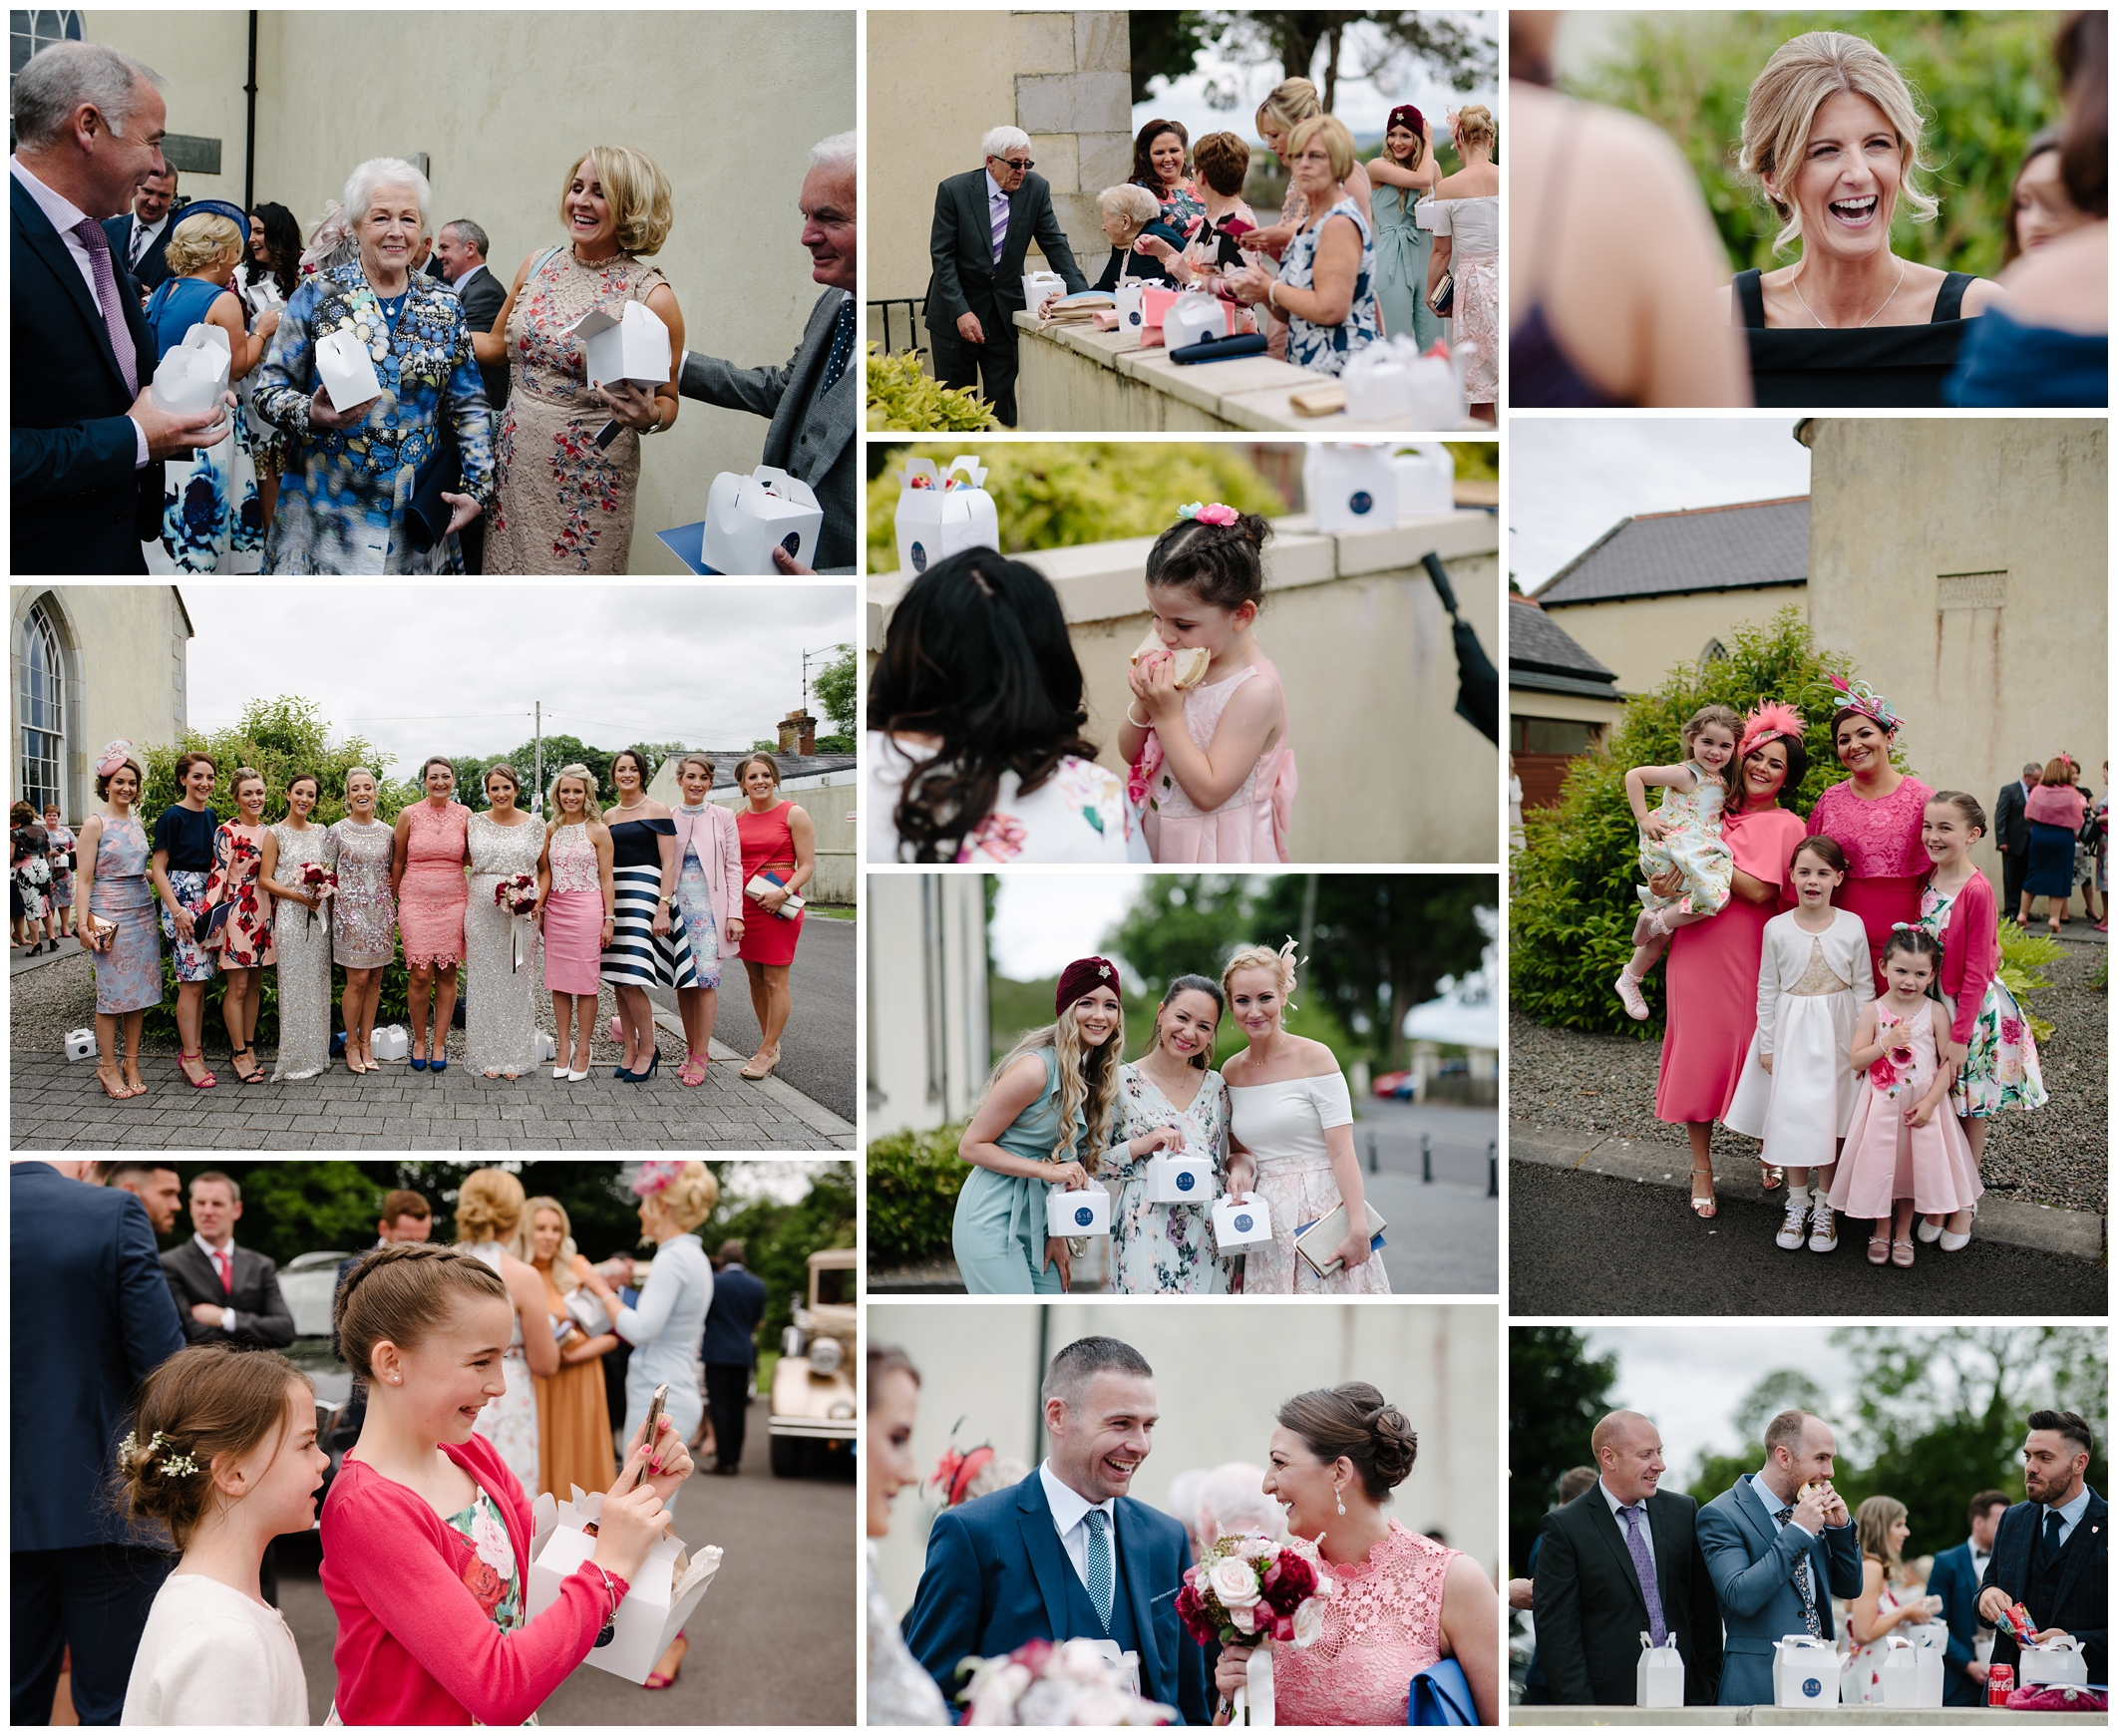 sinead_emmet_farnham_estate_wedding_jude_browne_photography_0083.jpg